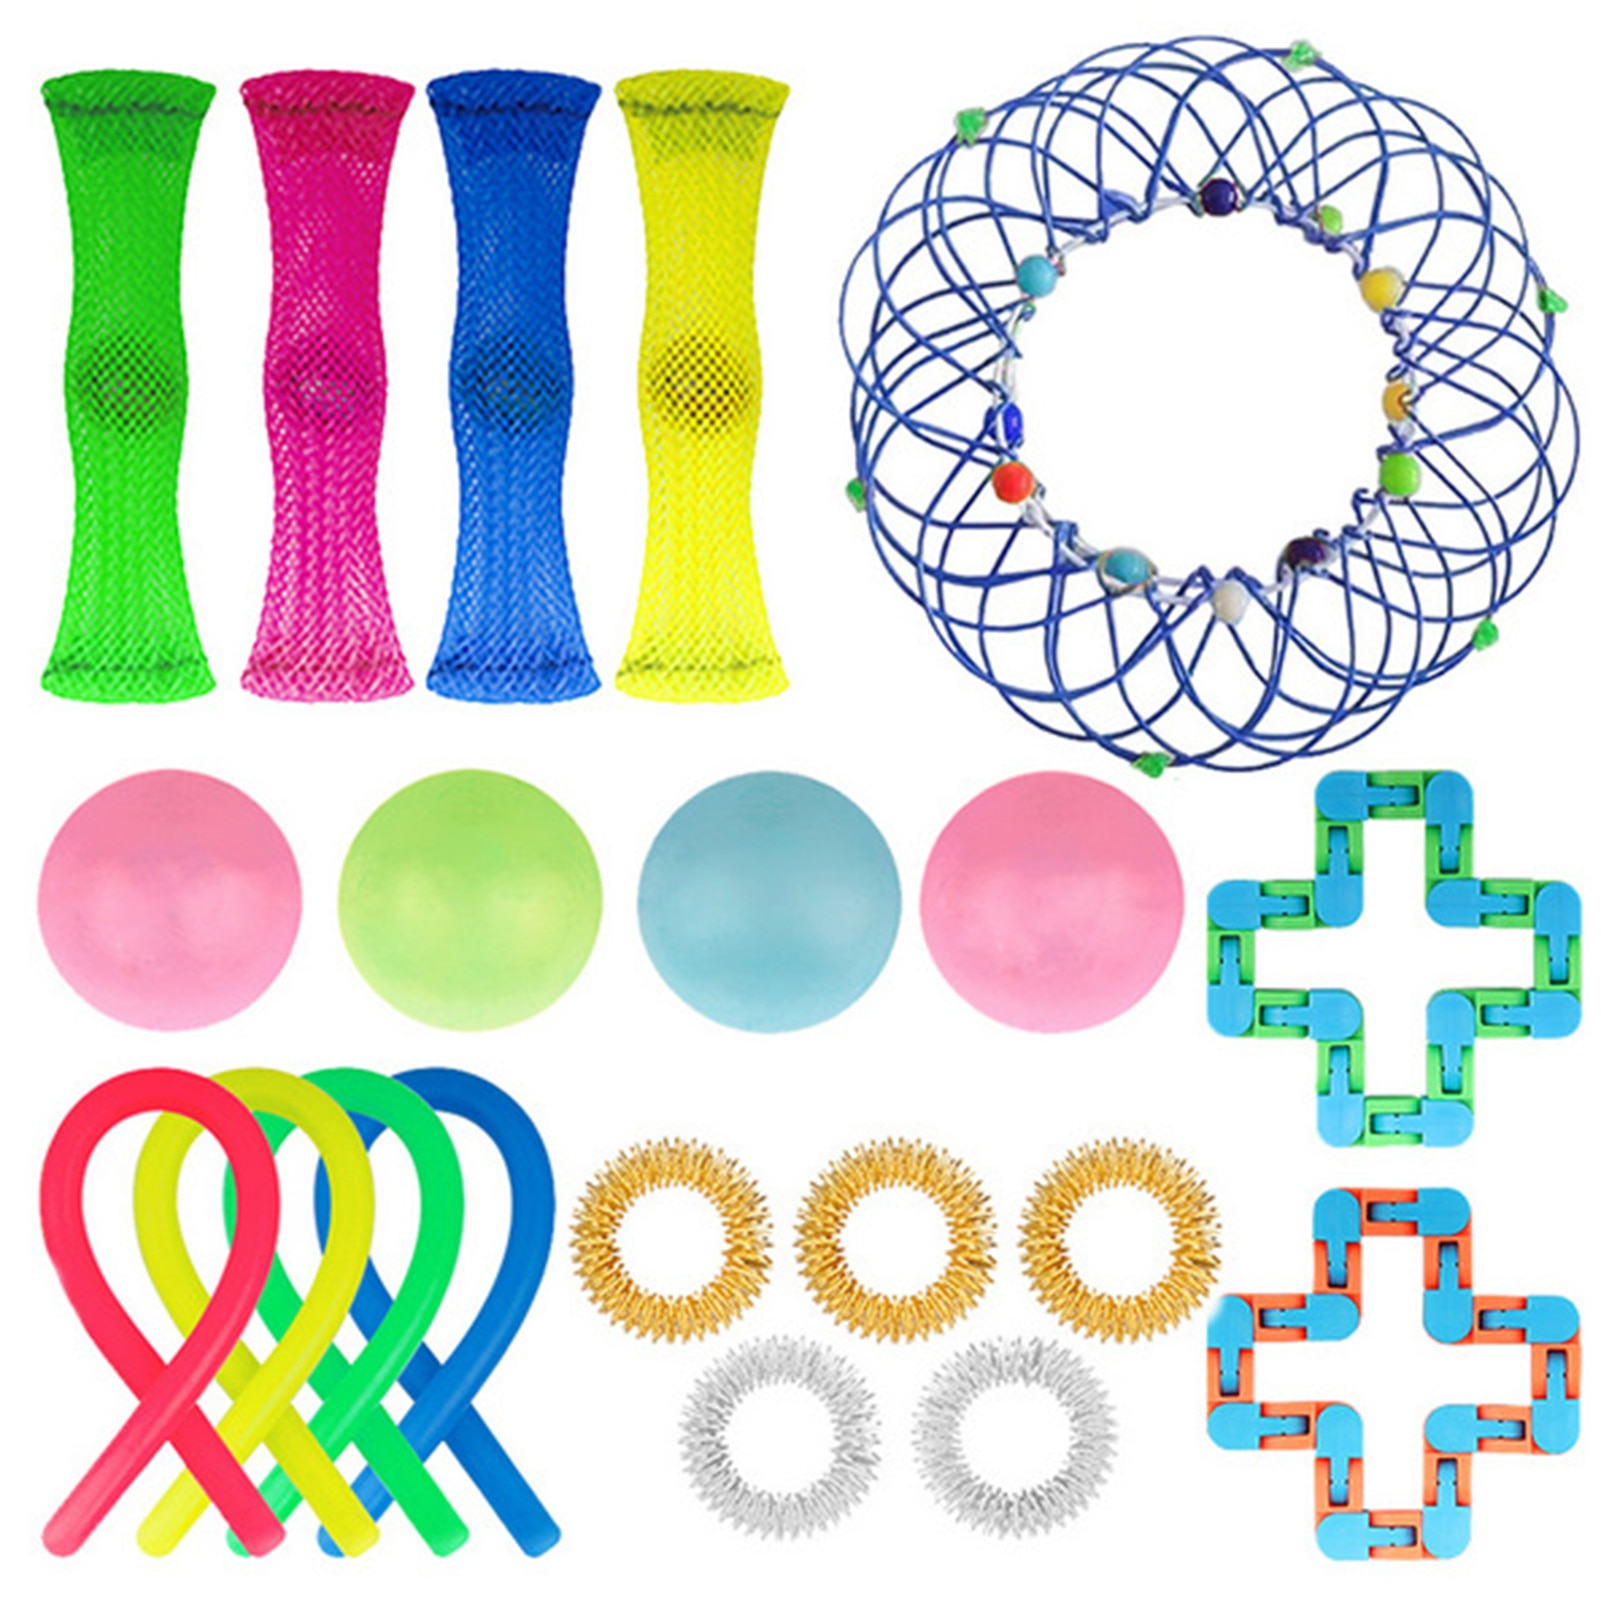 20 IN 1 Fidget Antistress Toys Noodle Rope Decompression Antistress Simple Dimple Hand Anxiety Toy For Children Kids Adults enlarge